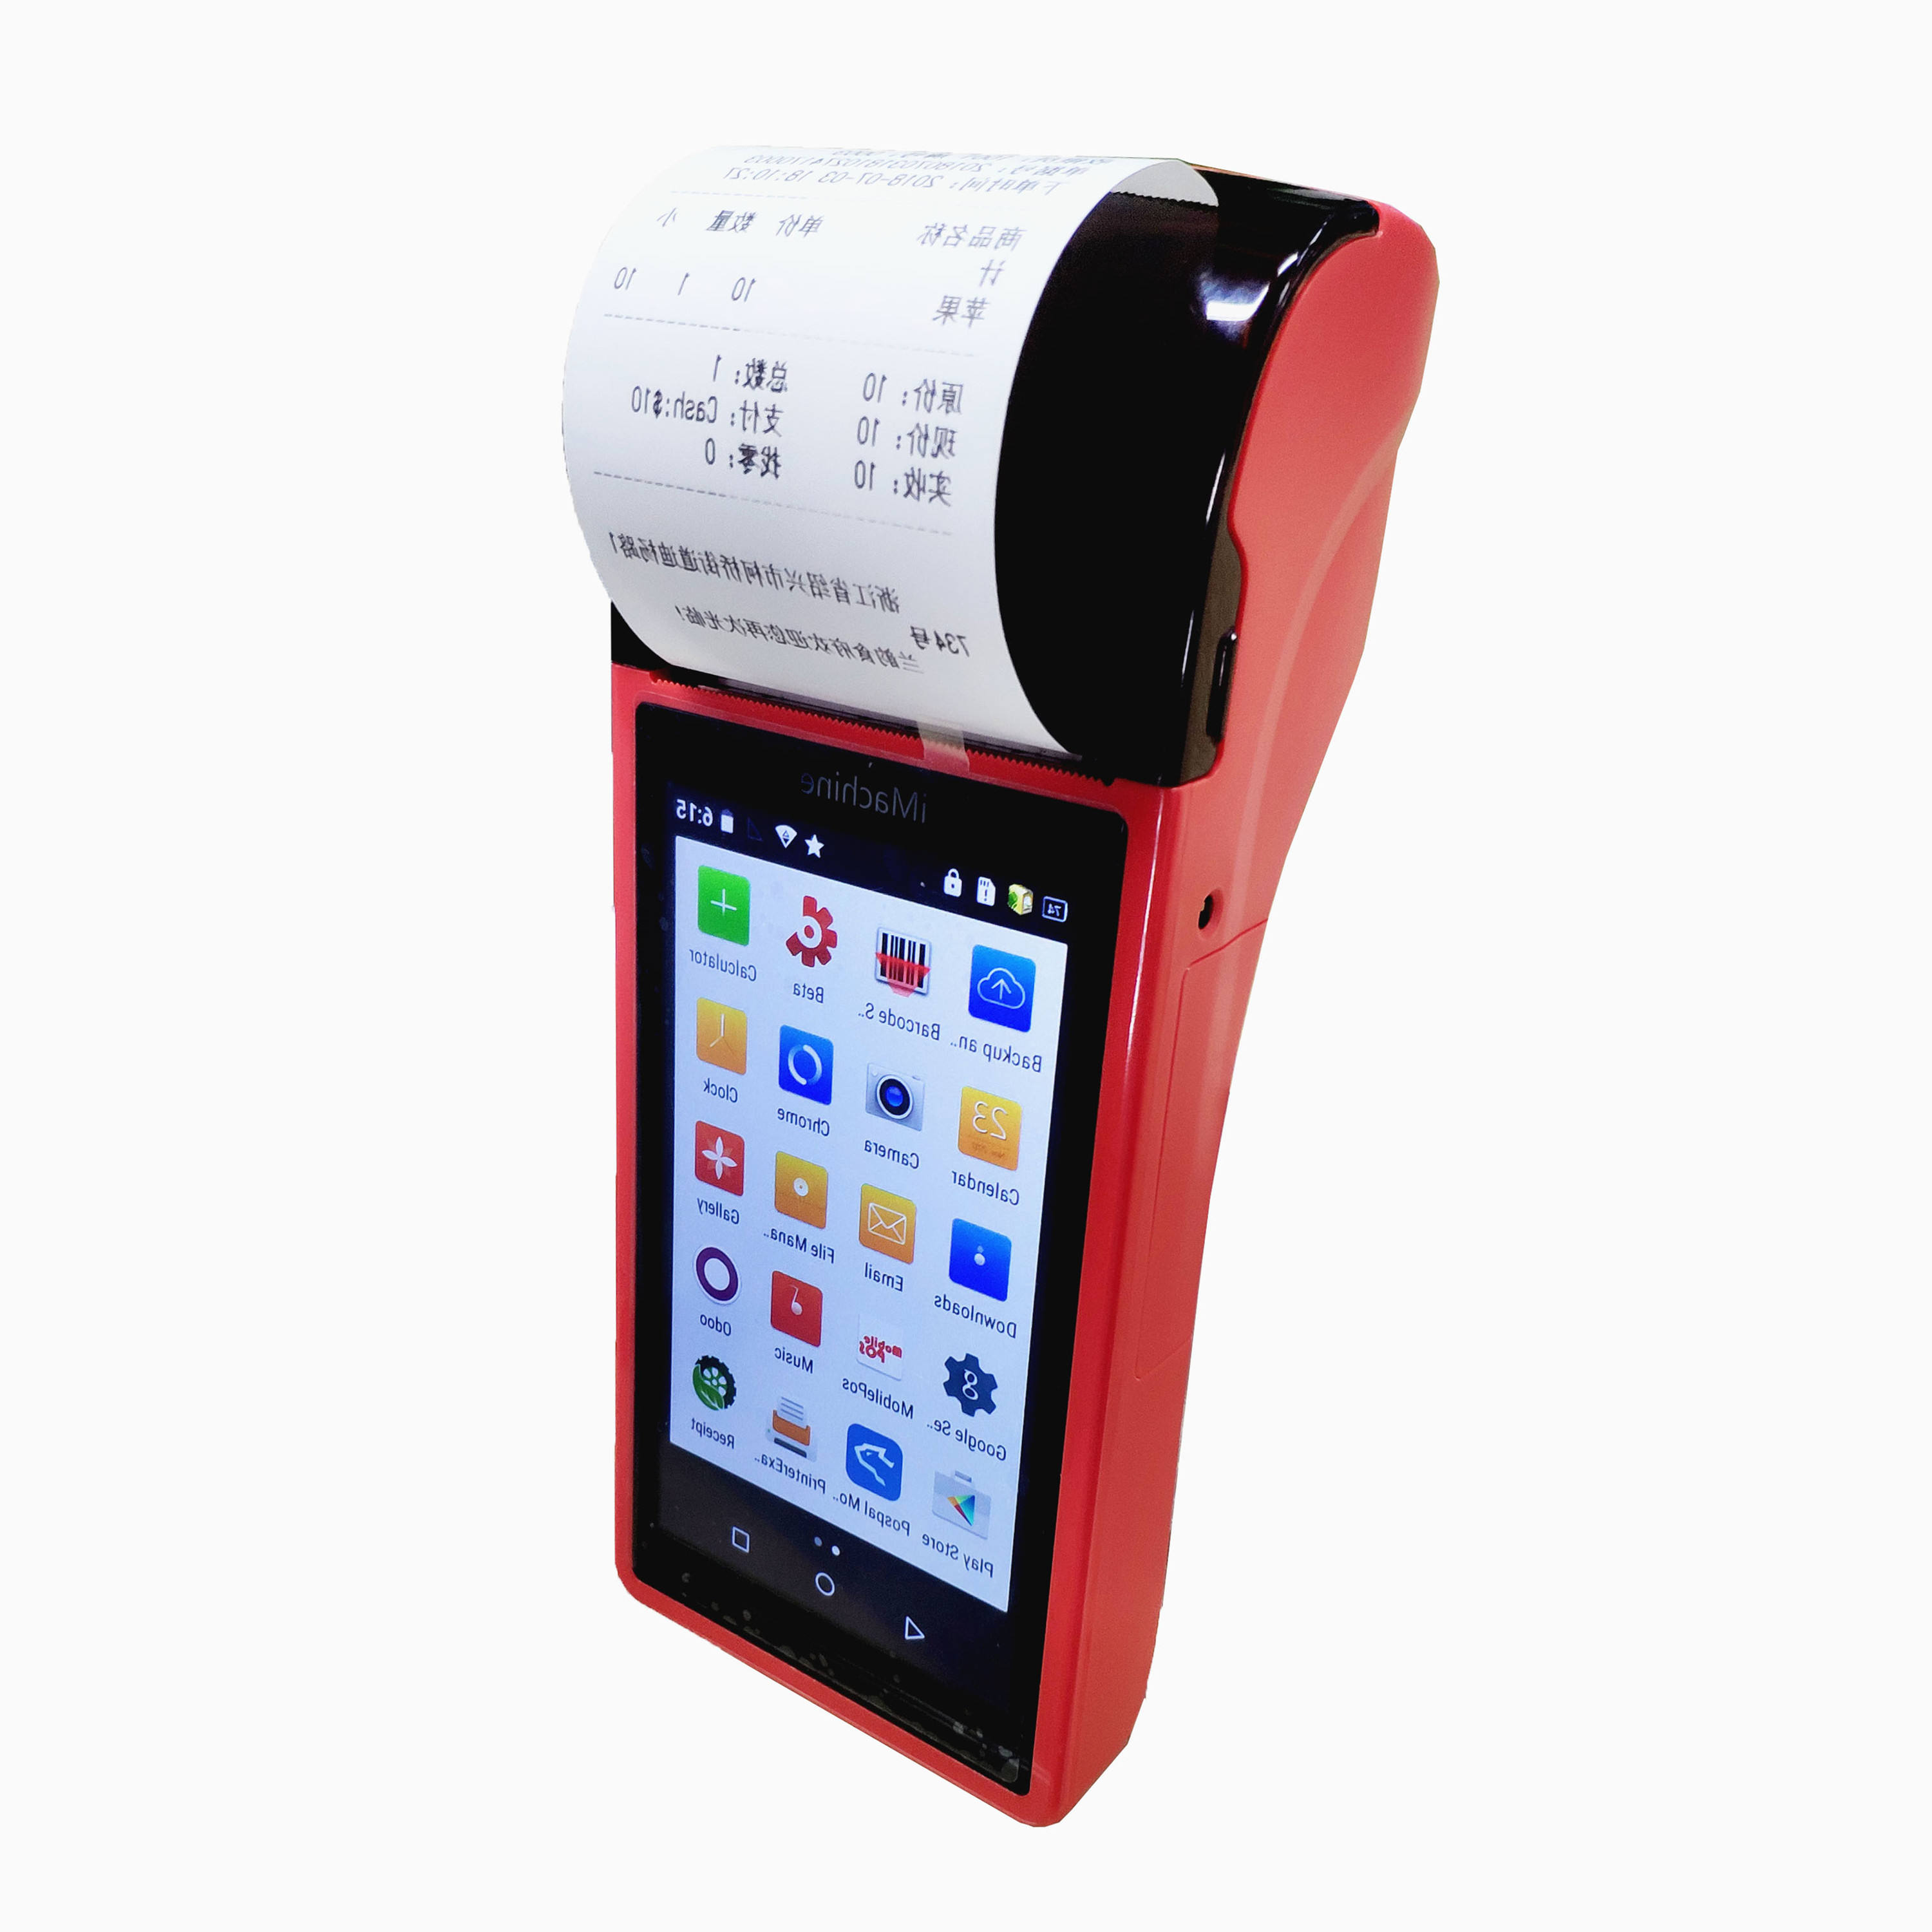 Portable Billing handheld POS terminal mobile Touch Screen Pos with printer for Retailers and restaurants